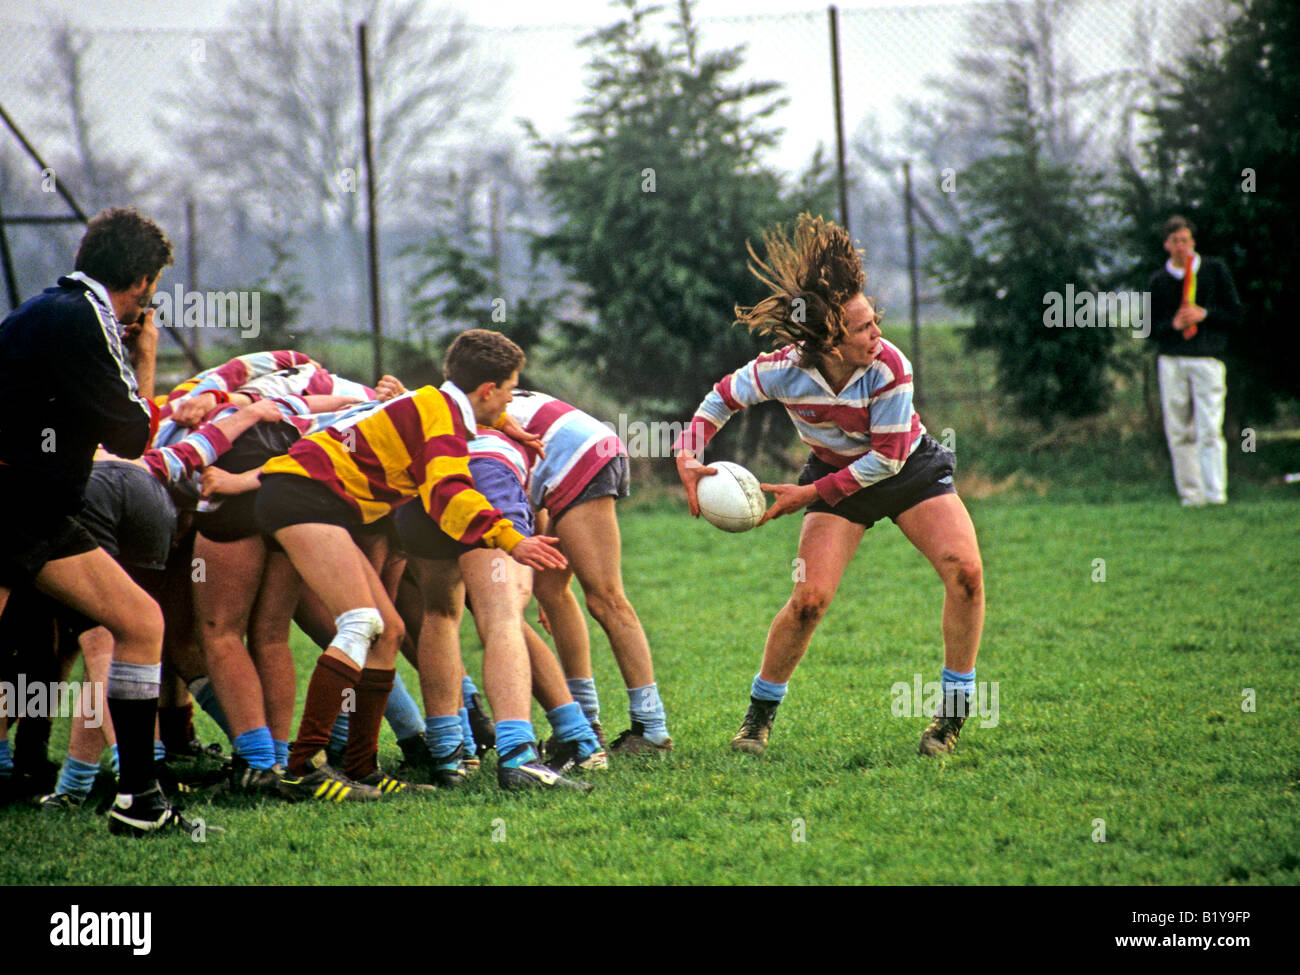 0847 Schoolboy Rugby England - Stock Image